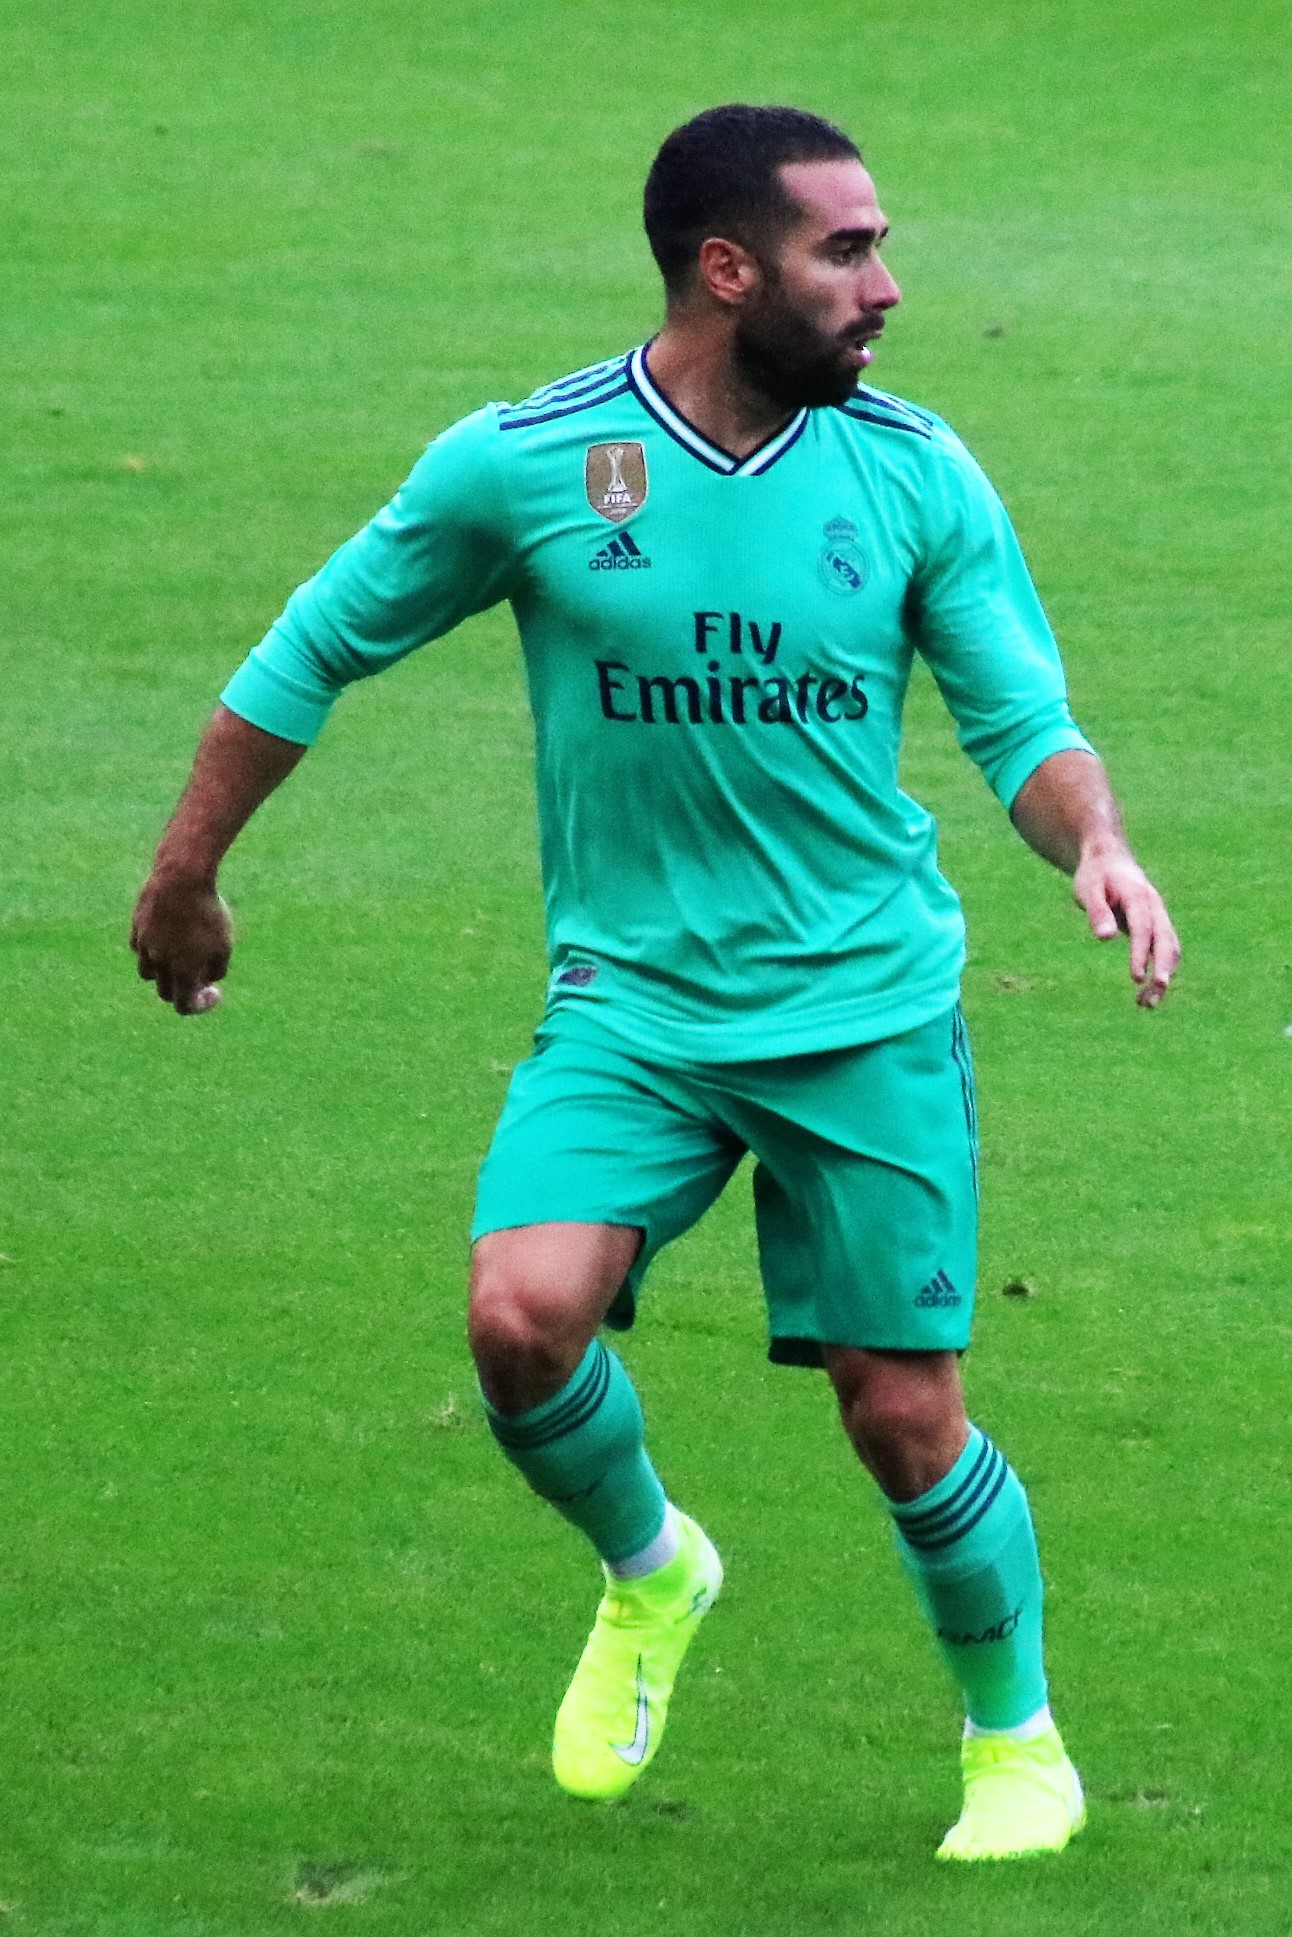 The 27-year old son of father (?) and mother(?) Daniel Carvajal in 2019 photo. Daniel Carvajal earned a  million dollar salary - leaving the net worth at 9,3 million in 2019